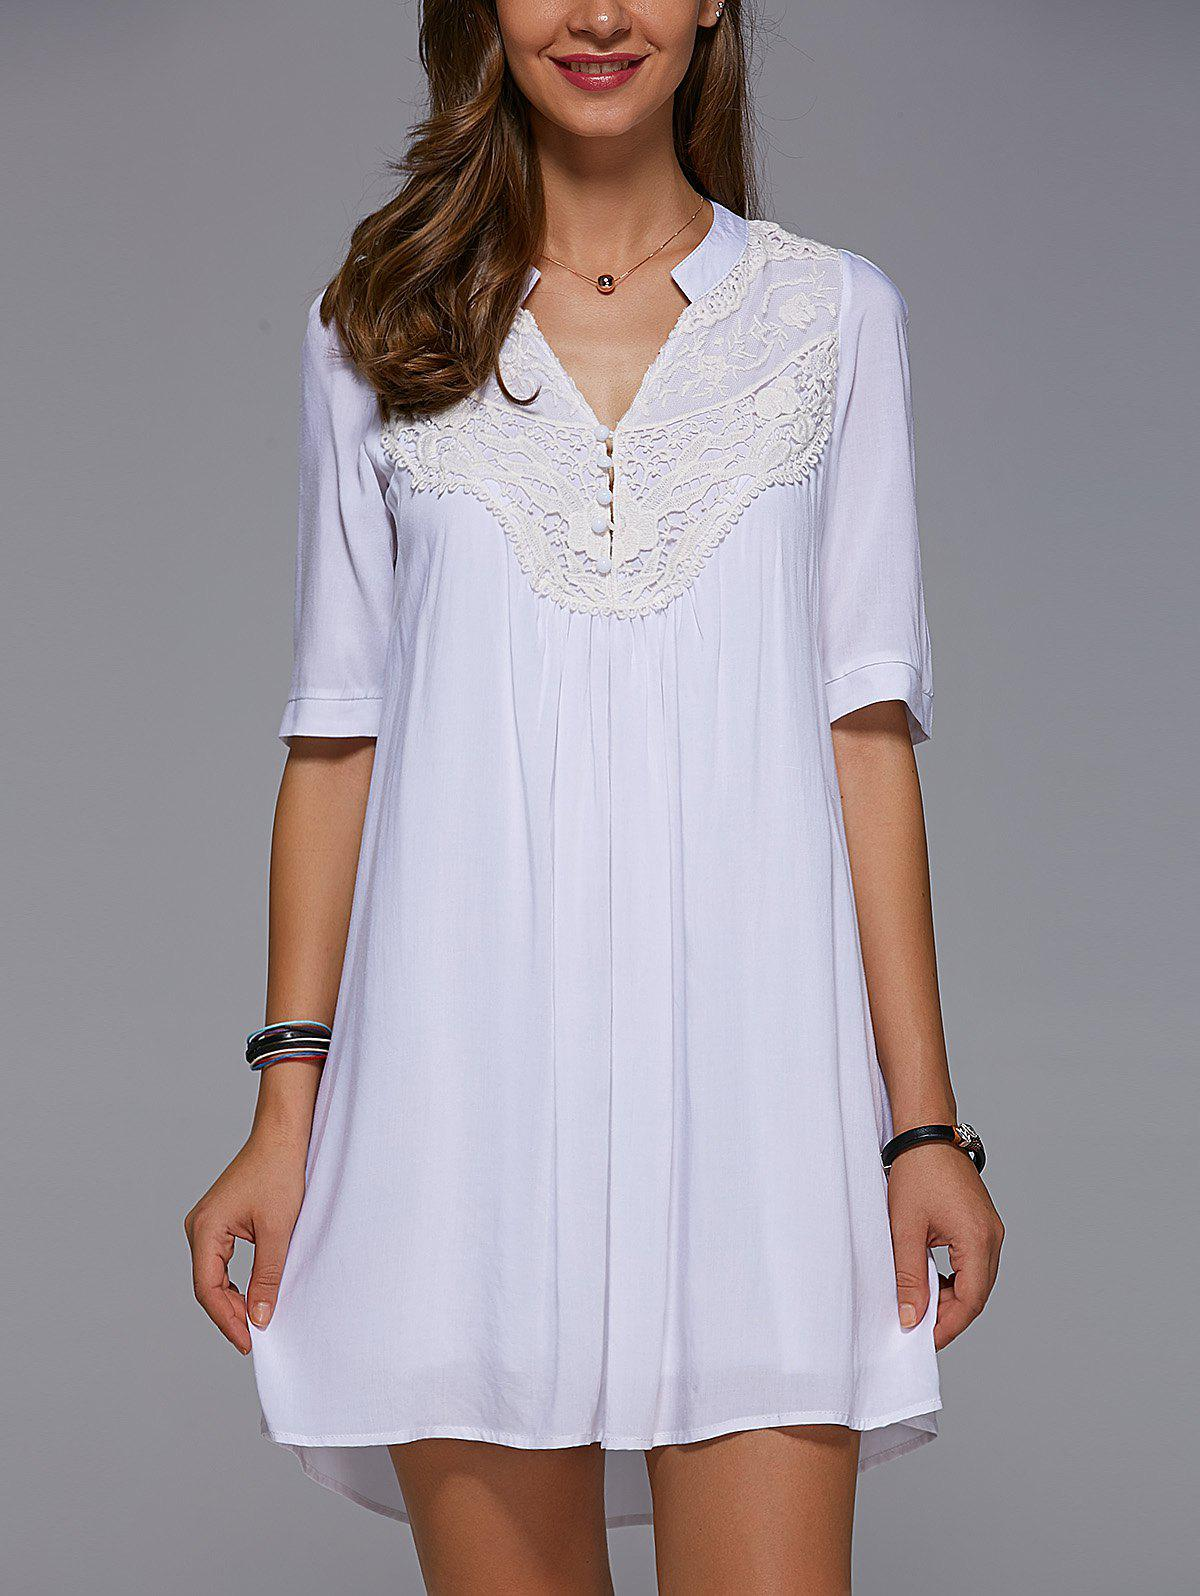 V Neck 1/2 Sleeve Lace Spliced White Mini Dress